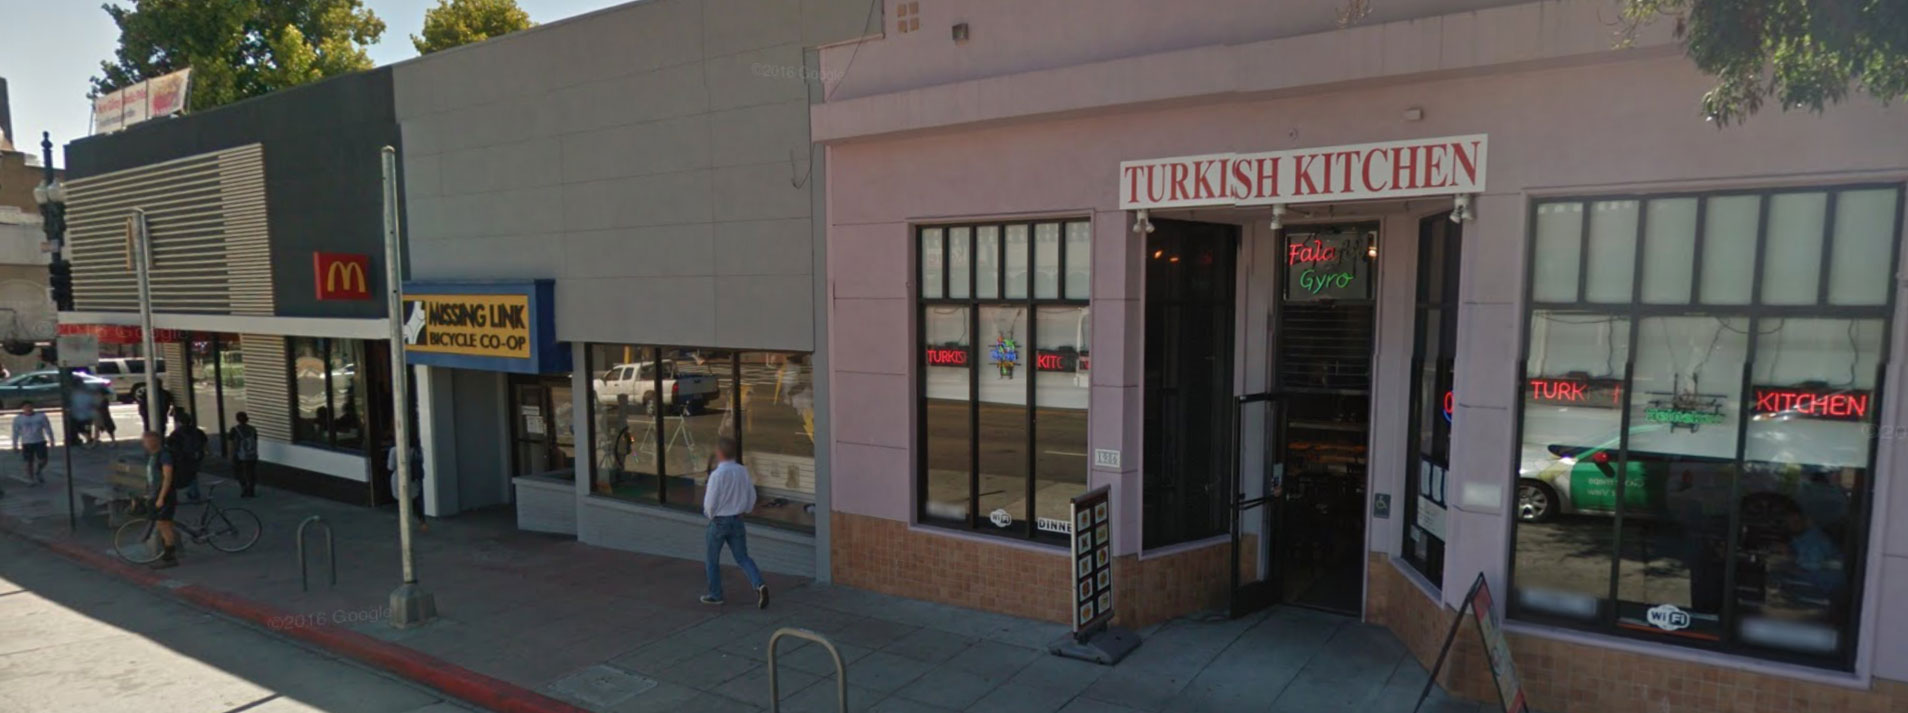 Turkish Kitchen Berkeley Menu